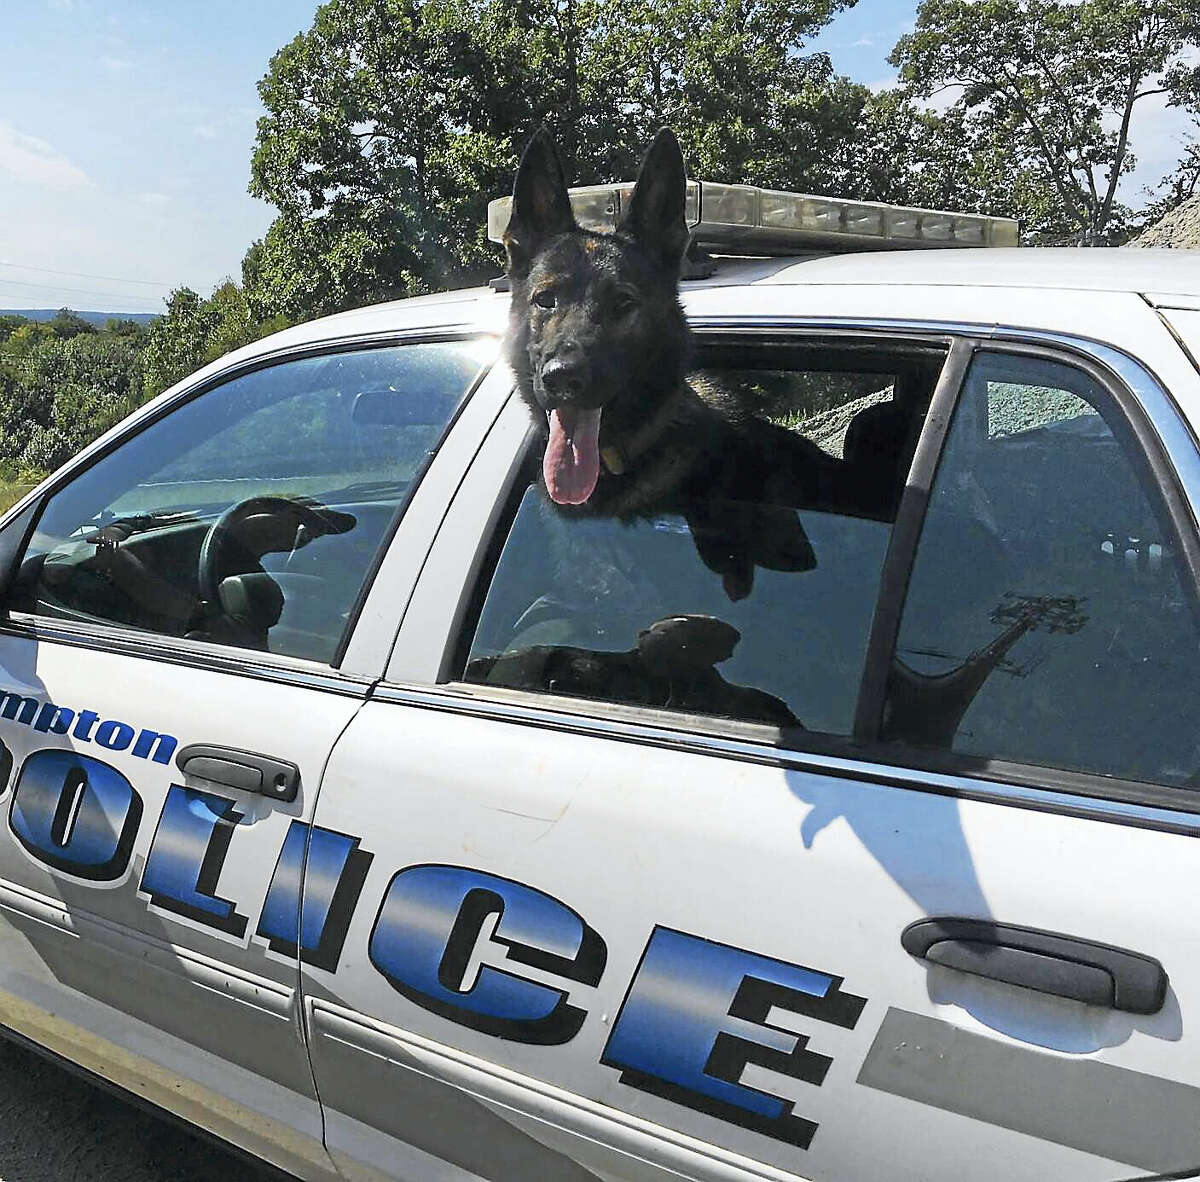 East Hampton Police Department's newest officer is canine Ringer, who's making his way through an intense, 16-week training at the Connecticut Police Academy. When Police Chief Sean Cox asked for an additional officer to help deal with the town's heroin epidemic and budget constraints made that impossible, Councilor Melissa Engel created the Belltown K-9 Challenge, which raised $30,000 in donations to buy the dog.